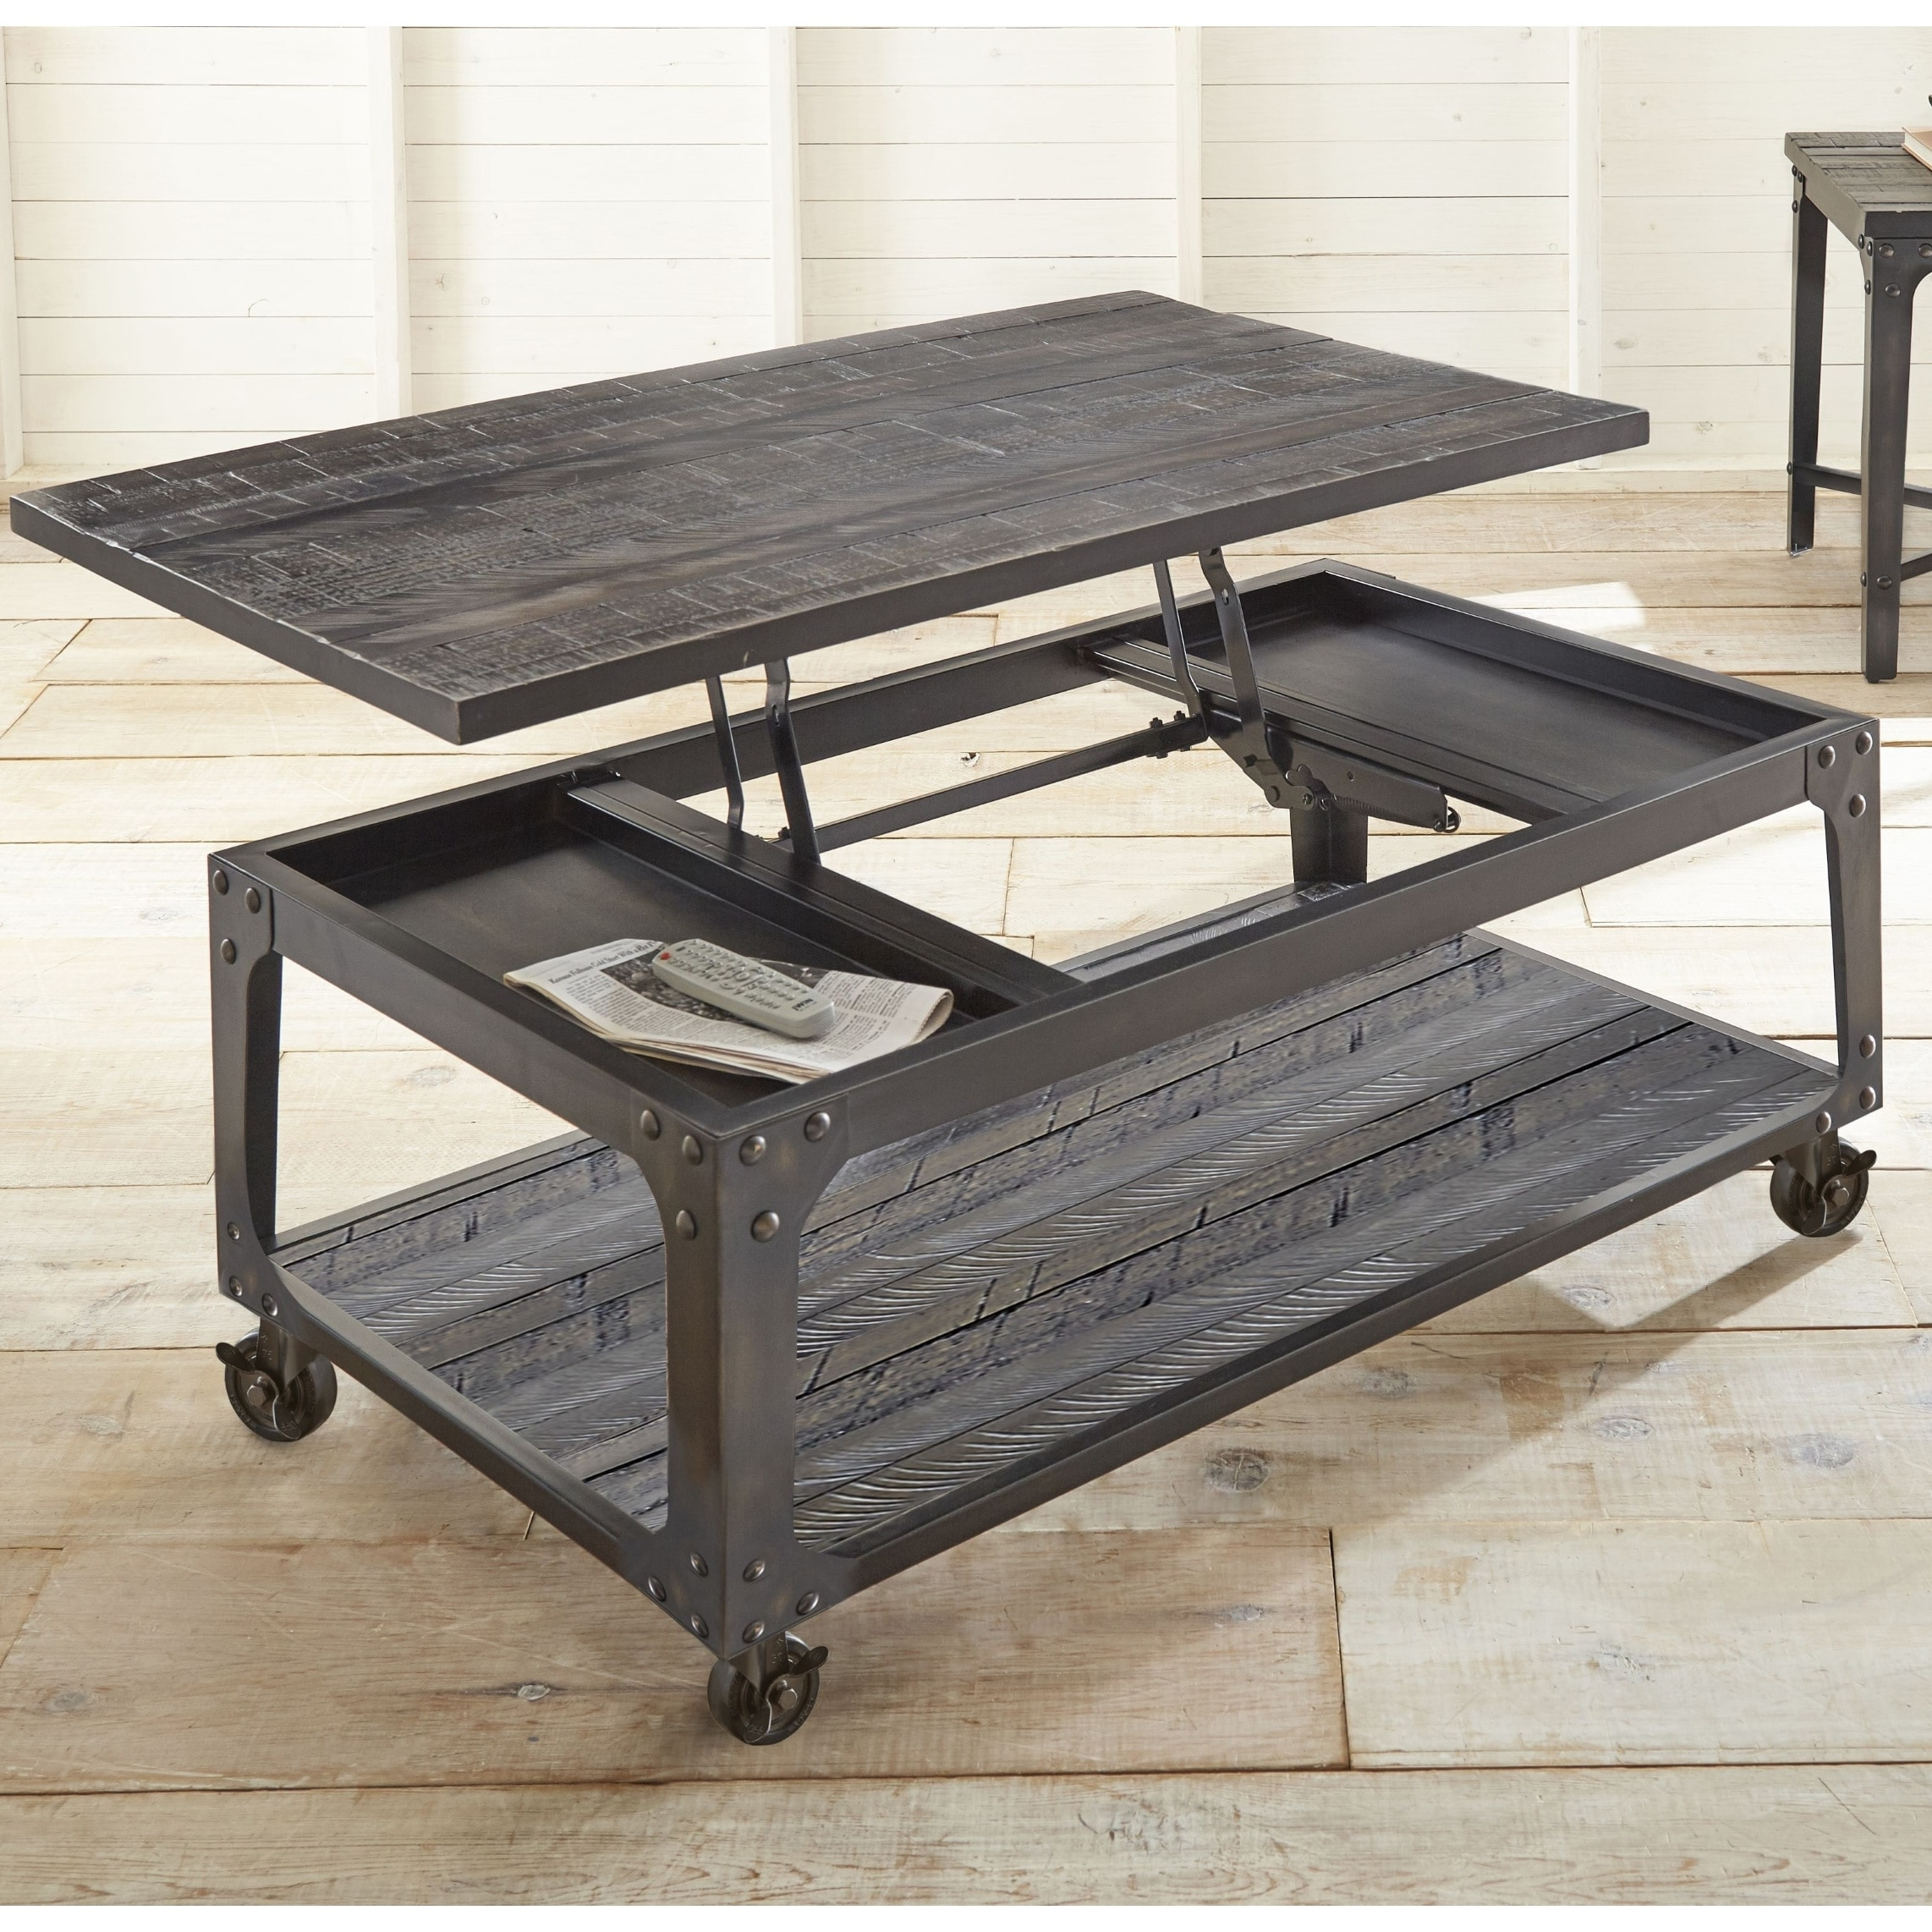 Springdale Style 48 Inch Rectangle Lift Top Coffee Table By Greyson Living